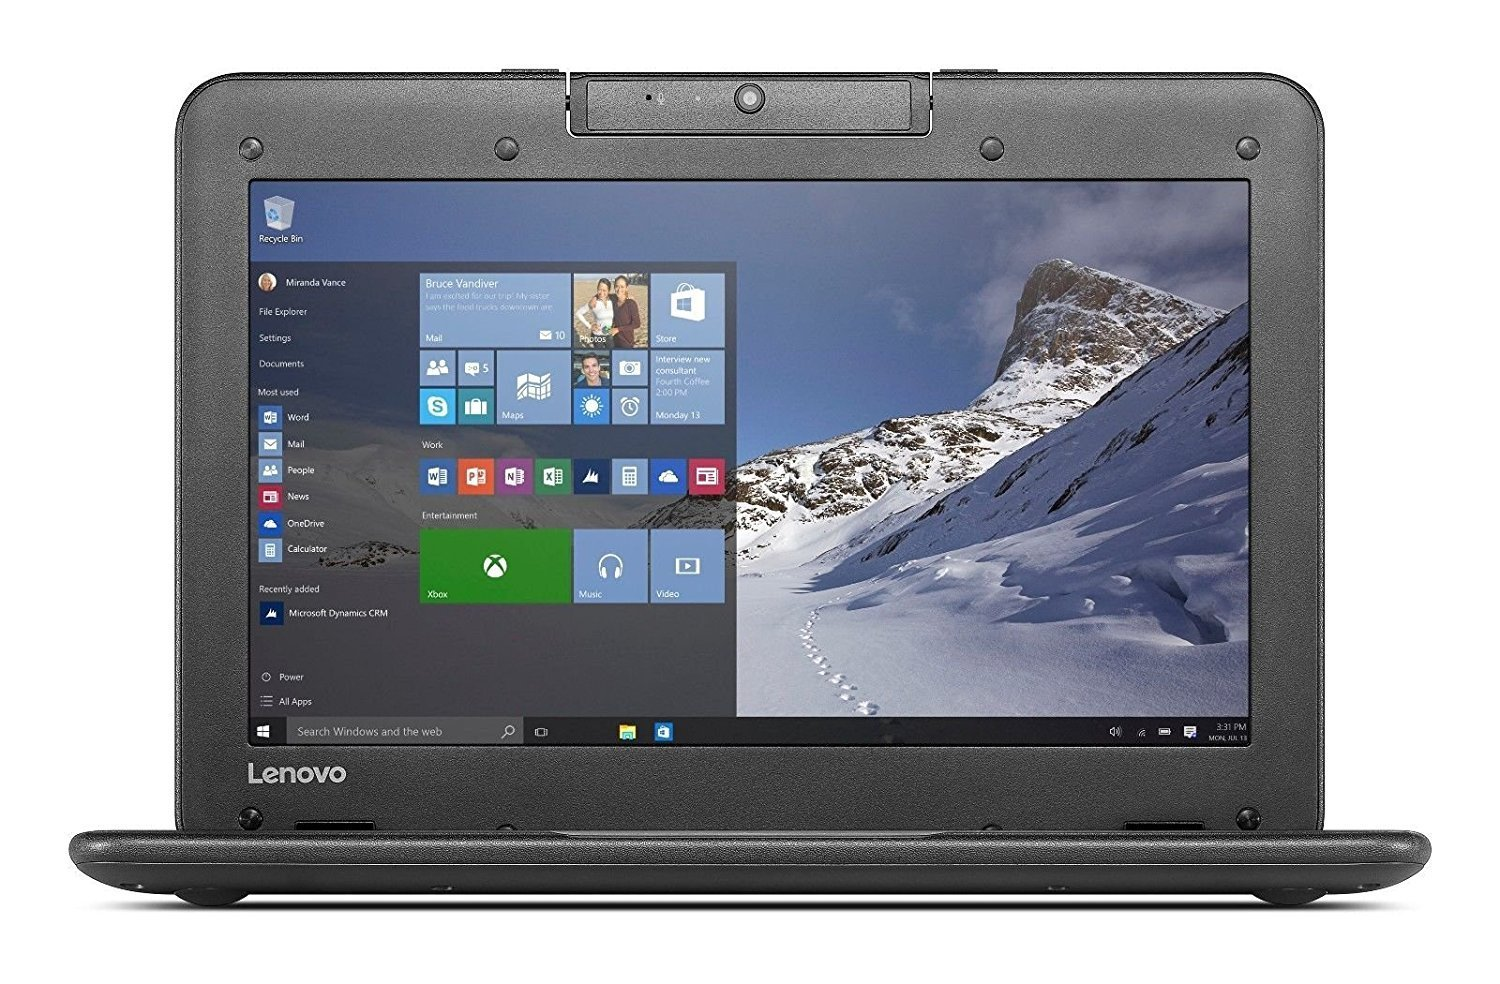 Lenovo N22 11.6-inch High Performance Laptop